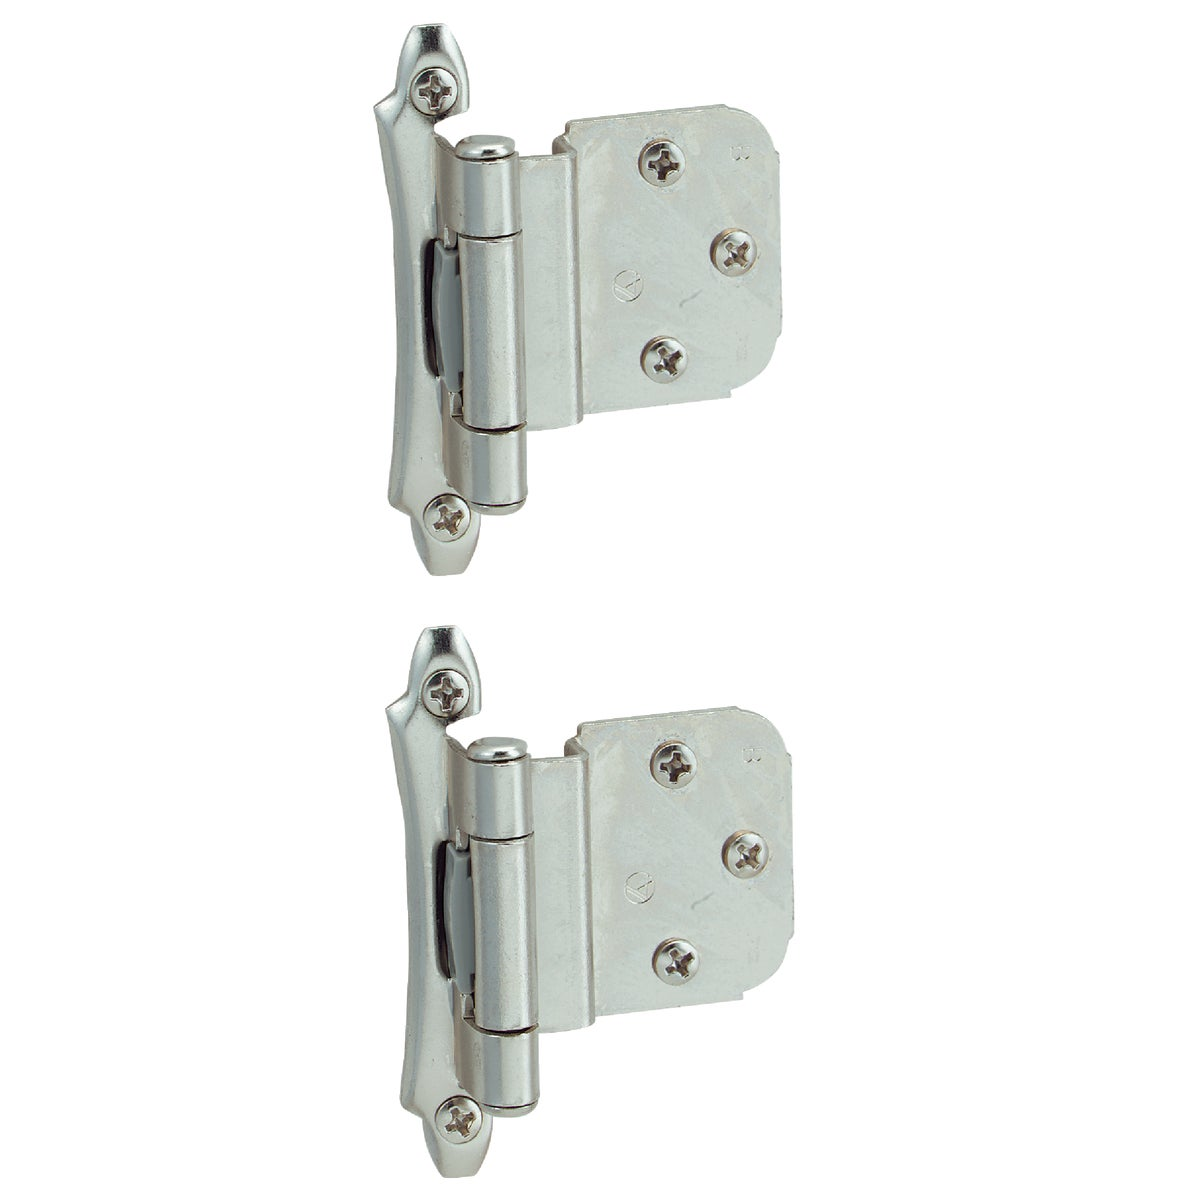 "3/8"" CHR INSET HINGE - BP7928-26 by Amerock Corporation"